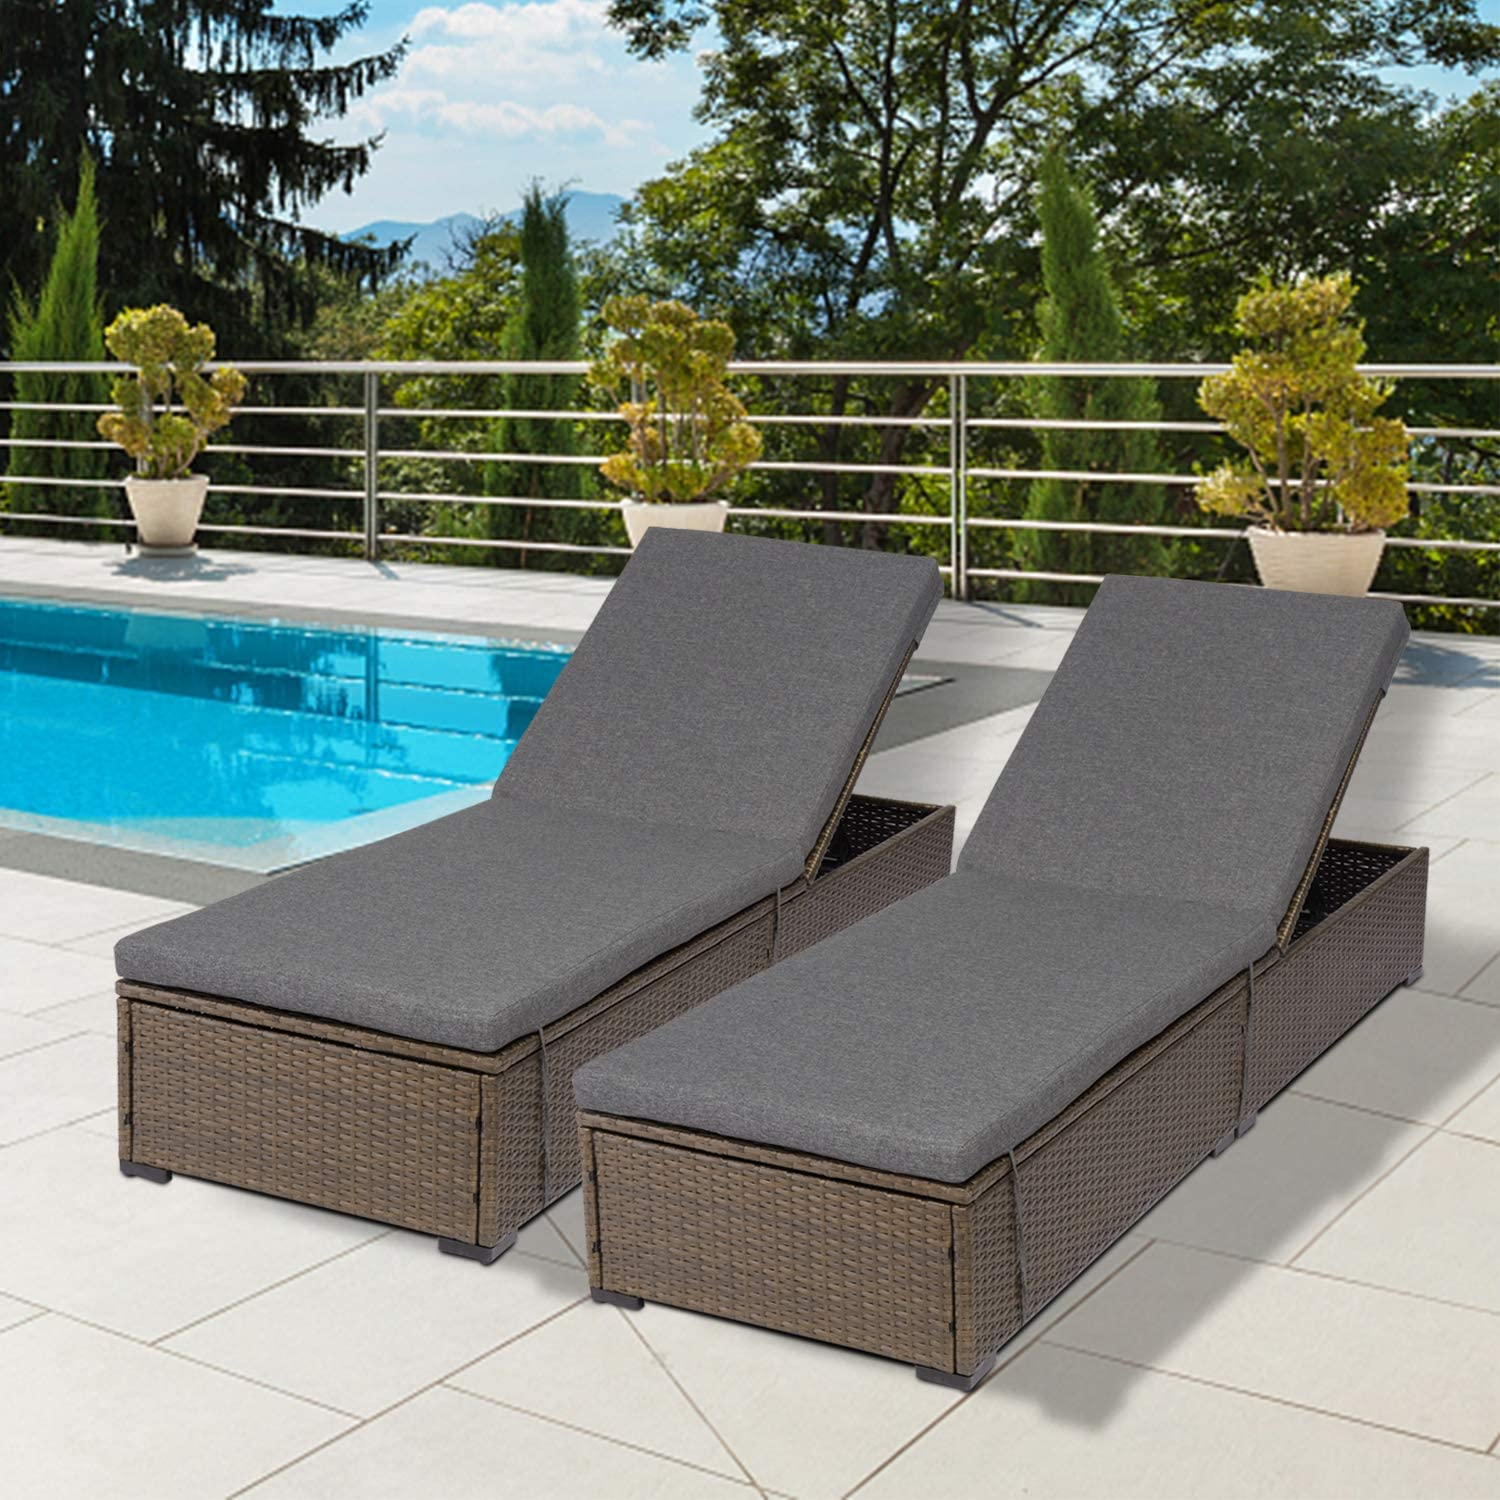 Kinsunny Outdoor supreme PE Wicker Chaise Max 70% OFF Reclining Patio Chair Lounges